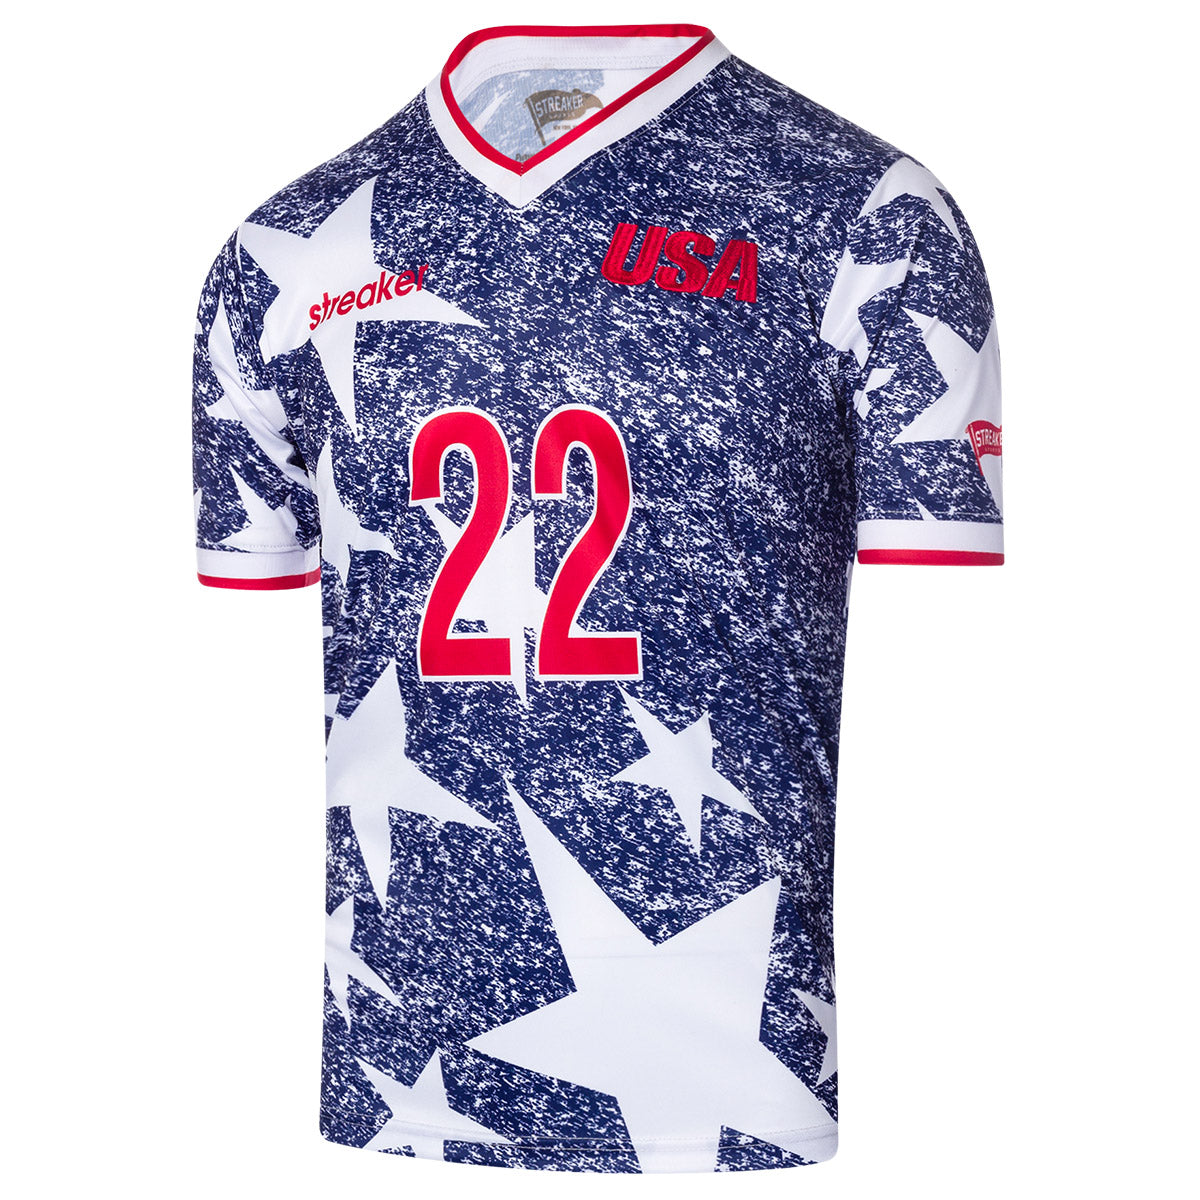 1994 USA 'Denim' Soccer Jersey - Streaker Sports